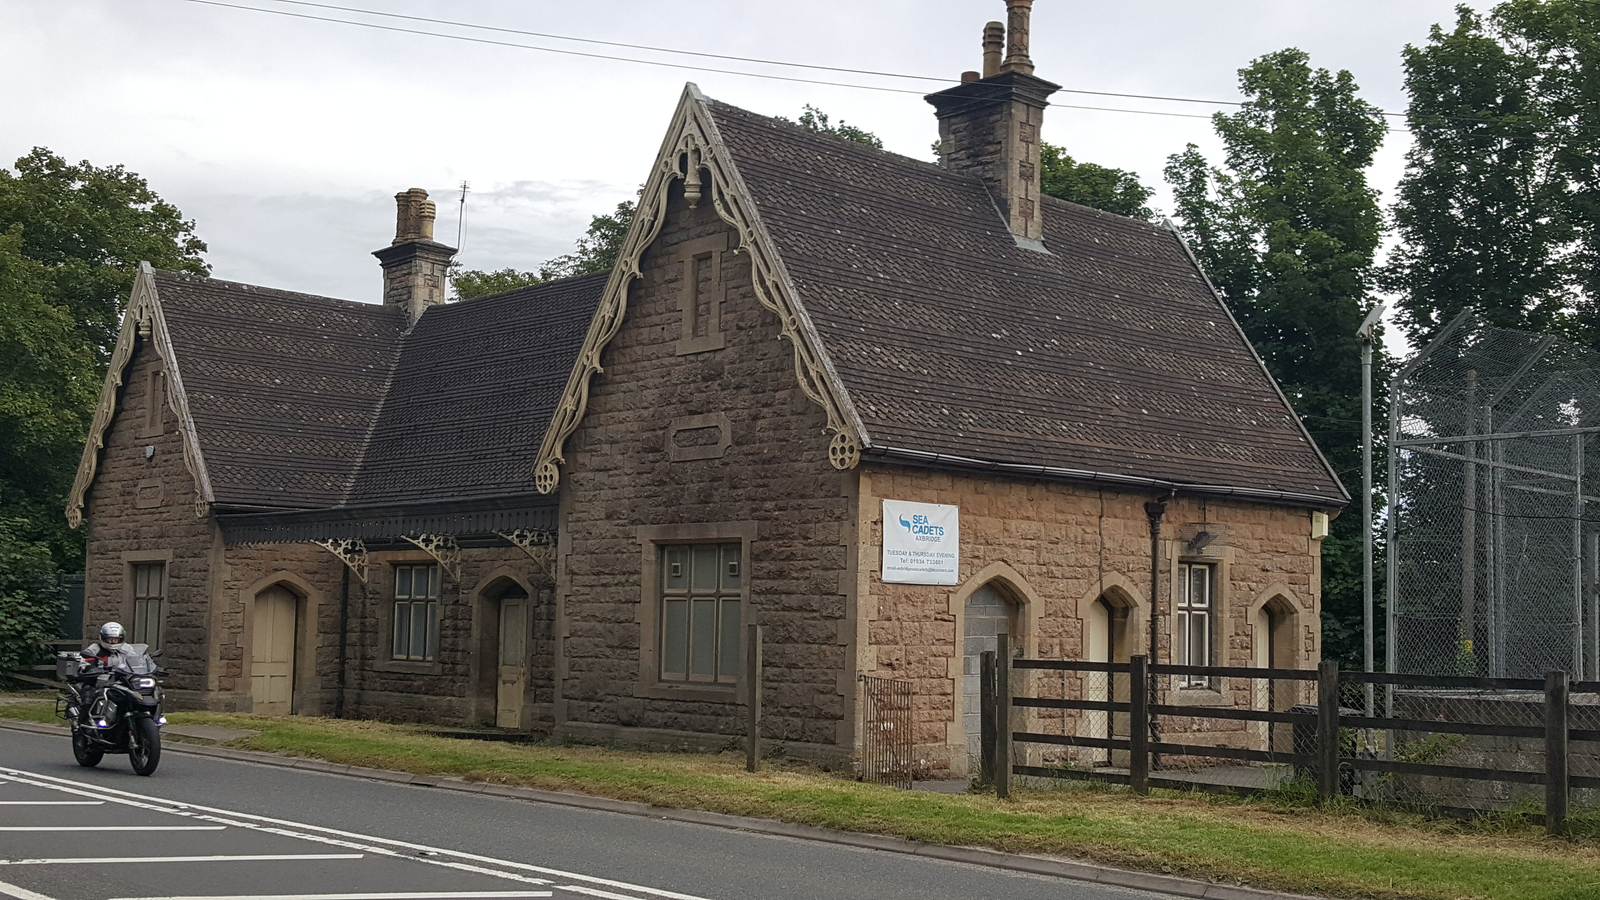 Axbridge Station Building from the A371 Axbridge By-pass